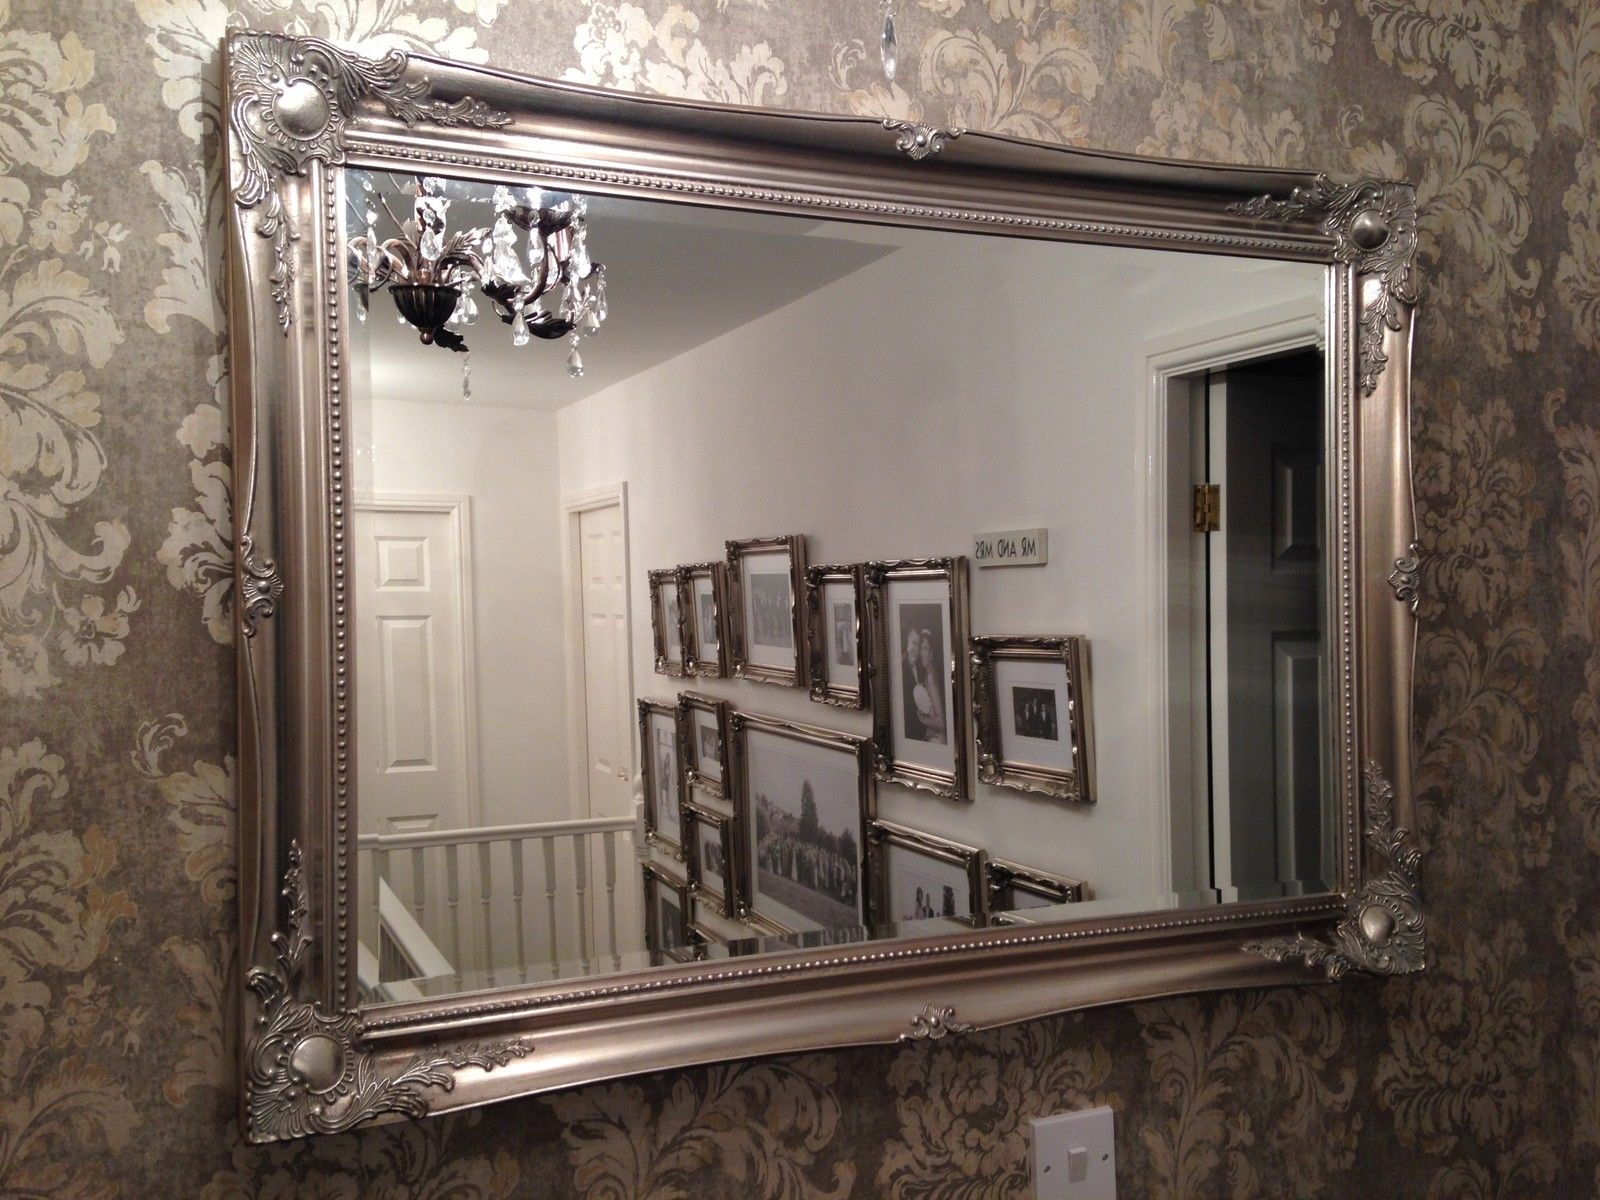 For Sale 20 Large Designer Wall Mirrors On Mirrors Decorative Intended For Large Mirror Sale (Image 8 of 15)